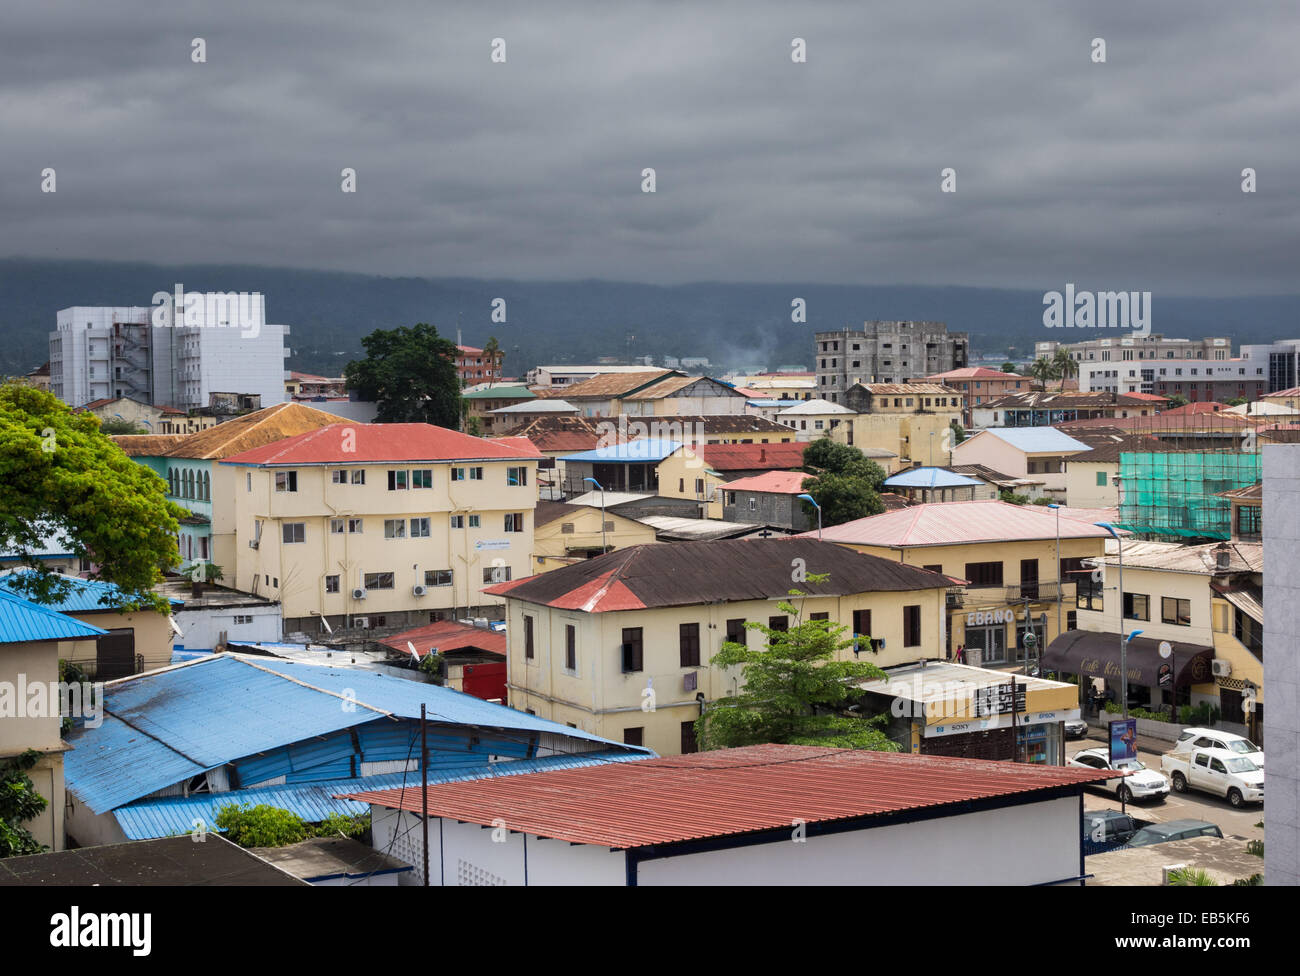 View over the rooftops of city of Malabo, Equatorial Guinea Stock Photo